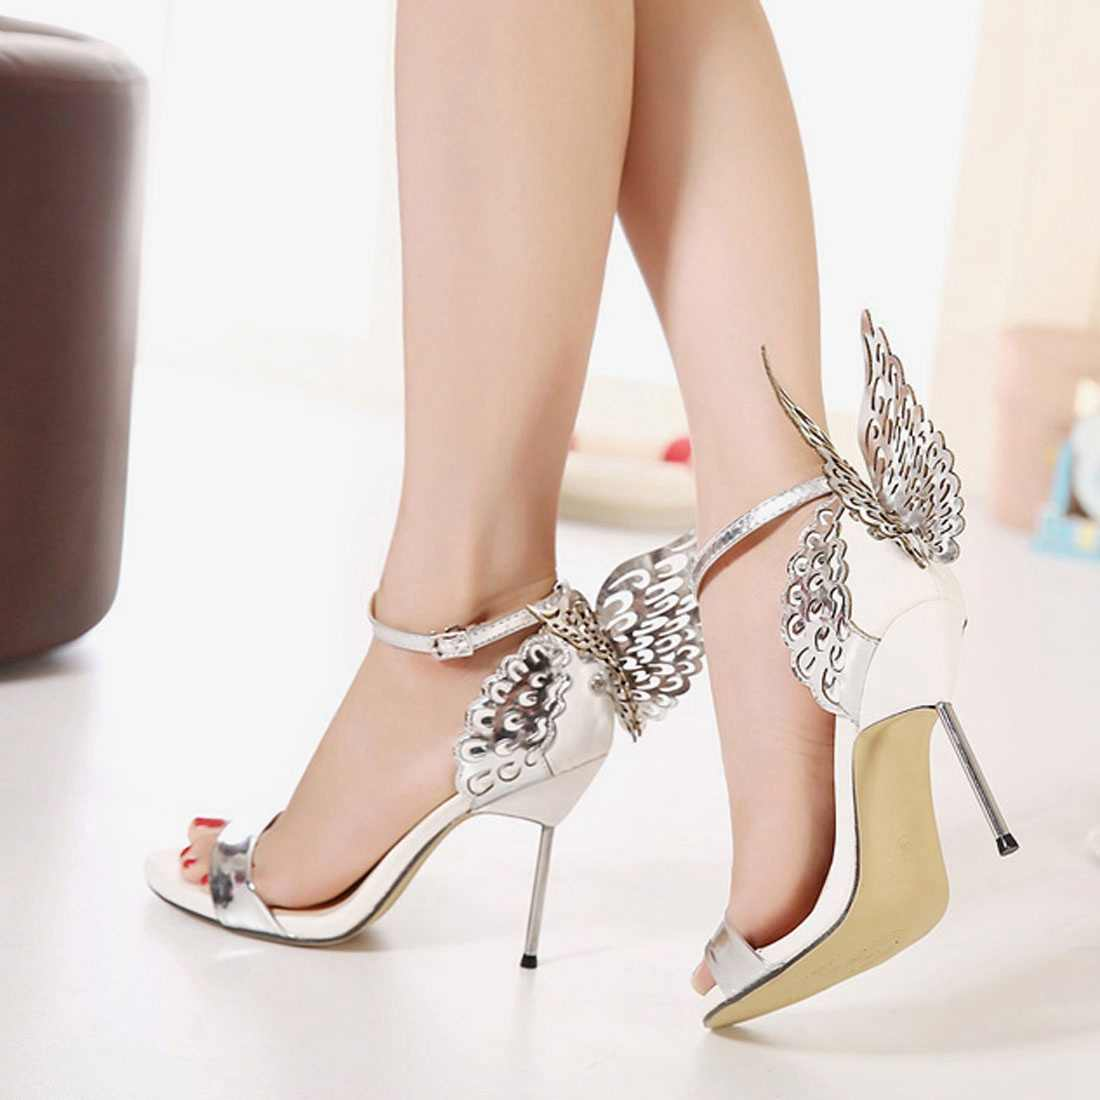 bd977e1e7190 2018 Butterfly Wings Women High Heels Sandals Bowtie Summer Shoes Sandals  Woman Pointed Toe Ankle Strap